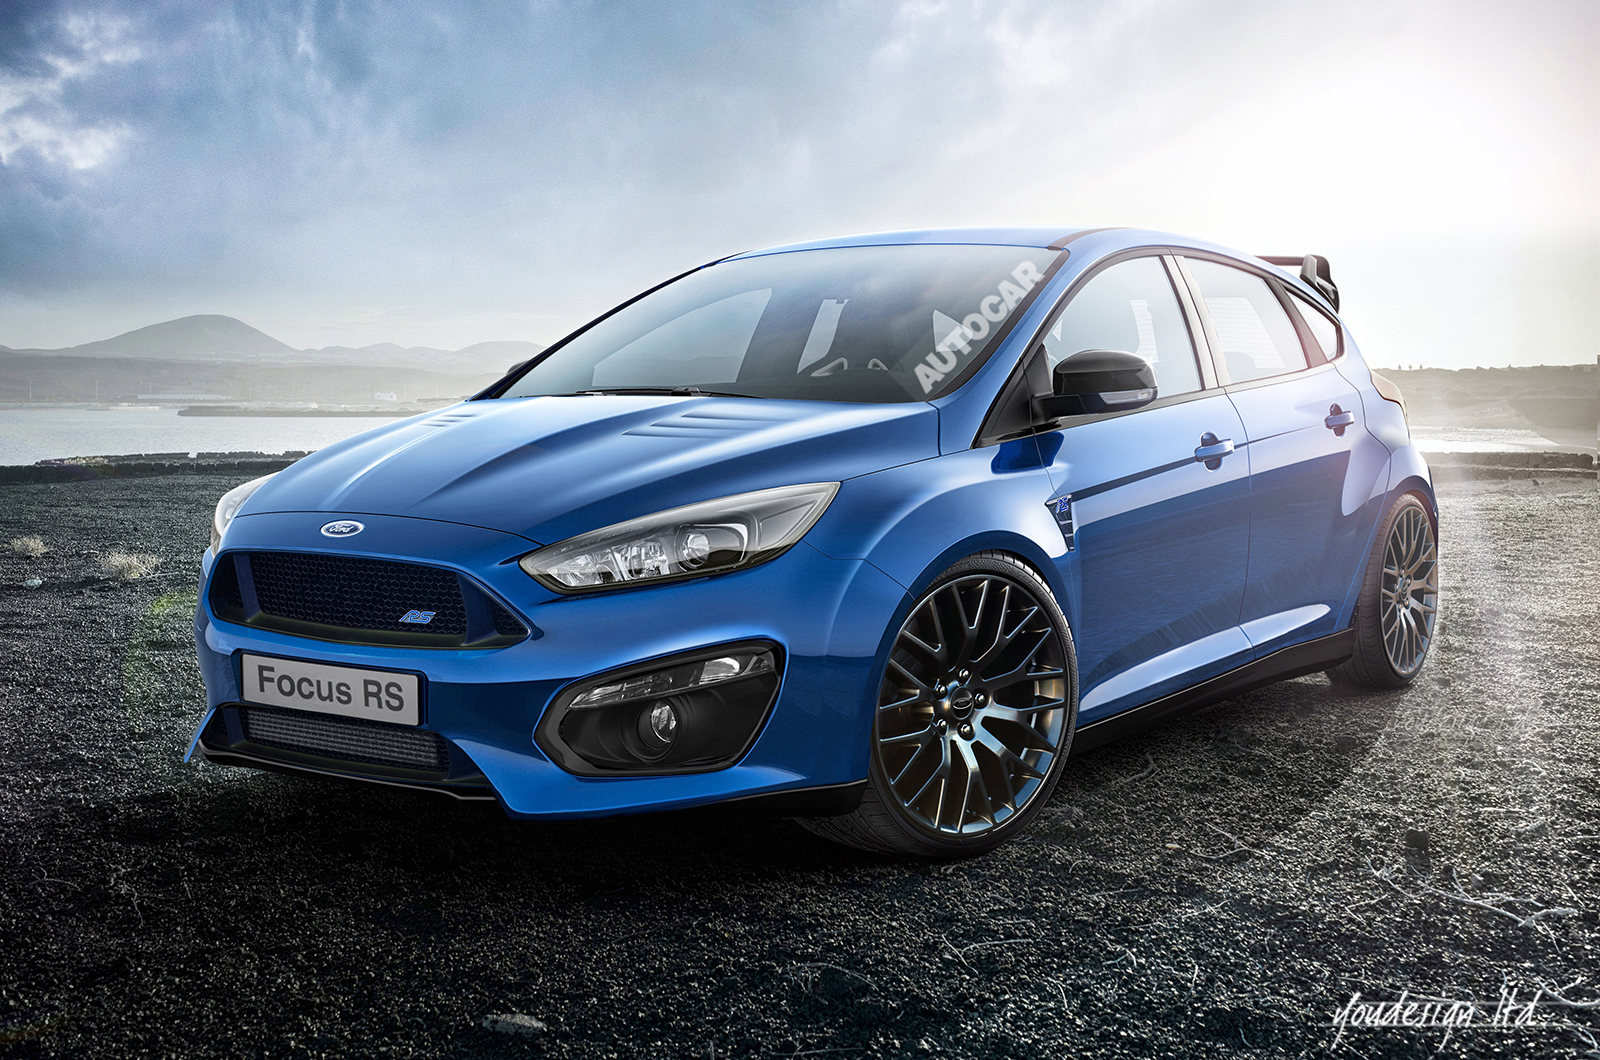 rendering 2017 ford focus rs front photo blue color. Black Bedroom Furniture Sets. Home Design Ideas